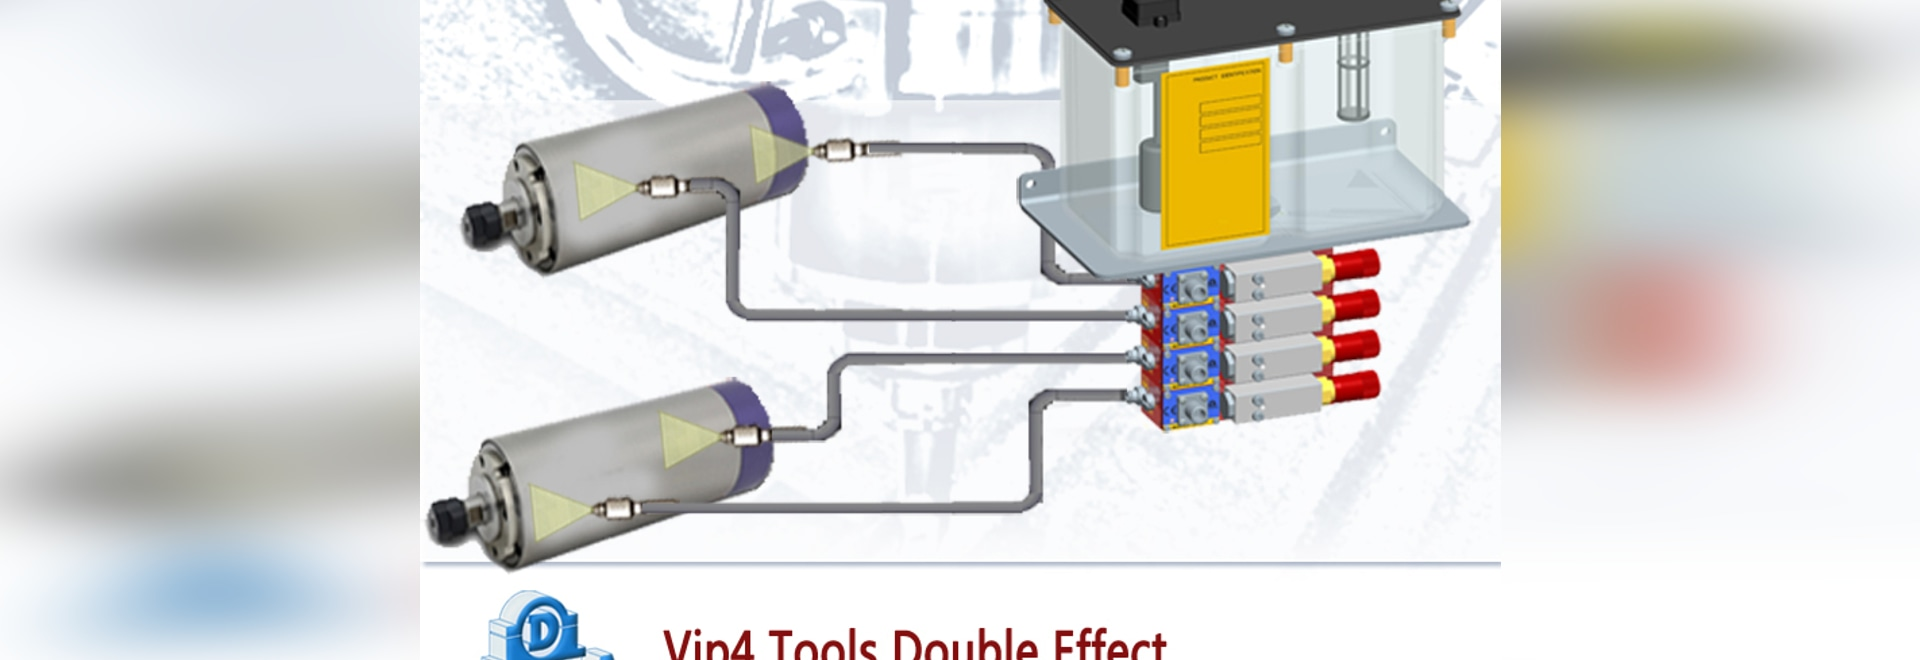 Vip4 Tools Double Effect